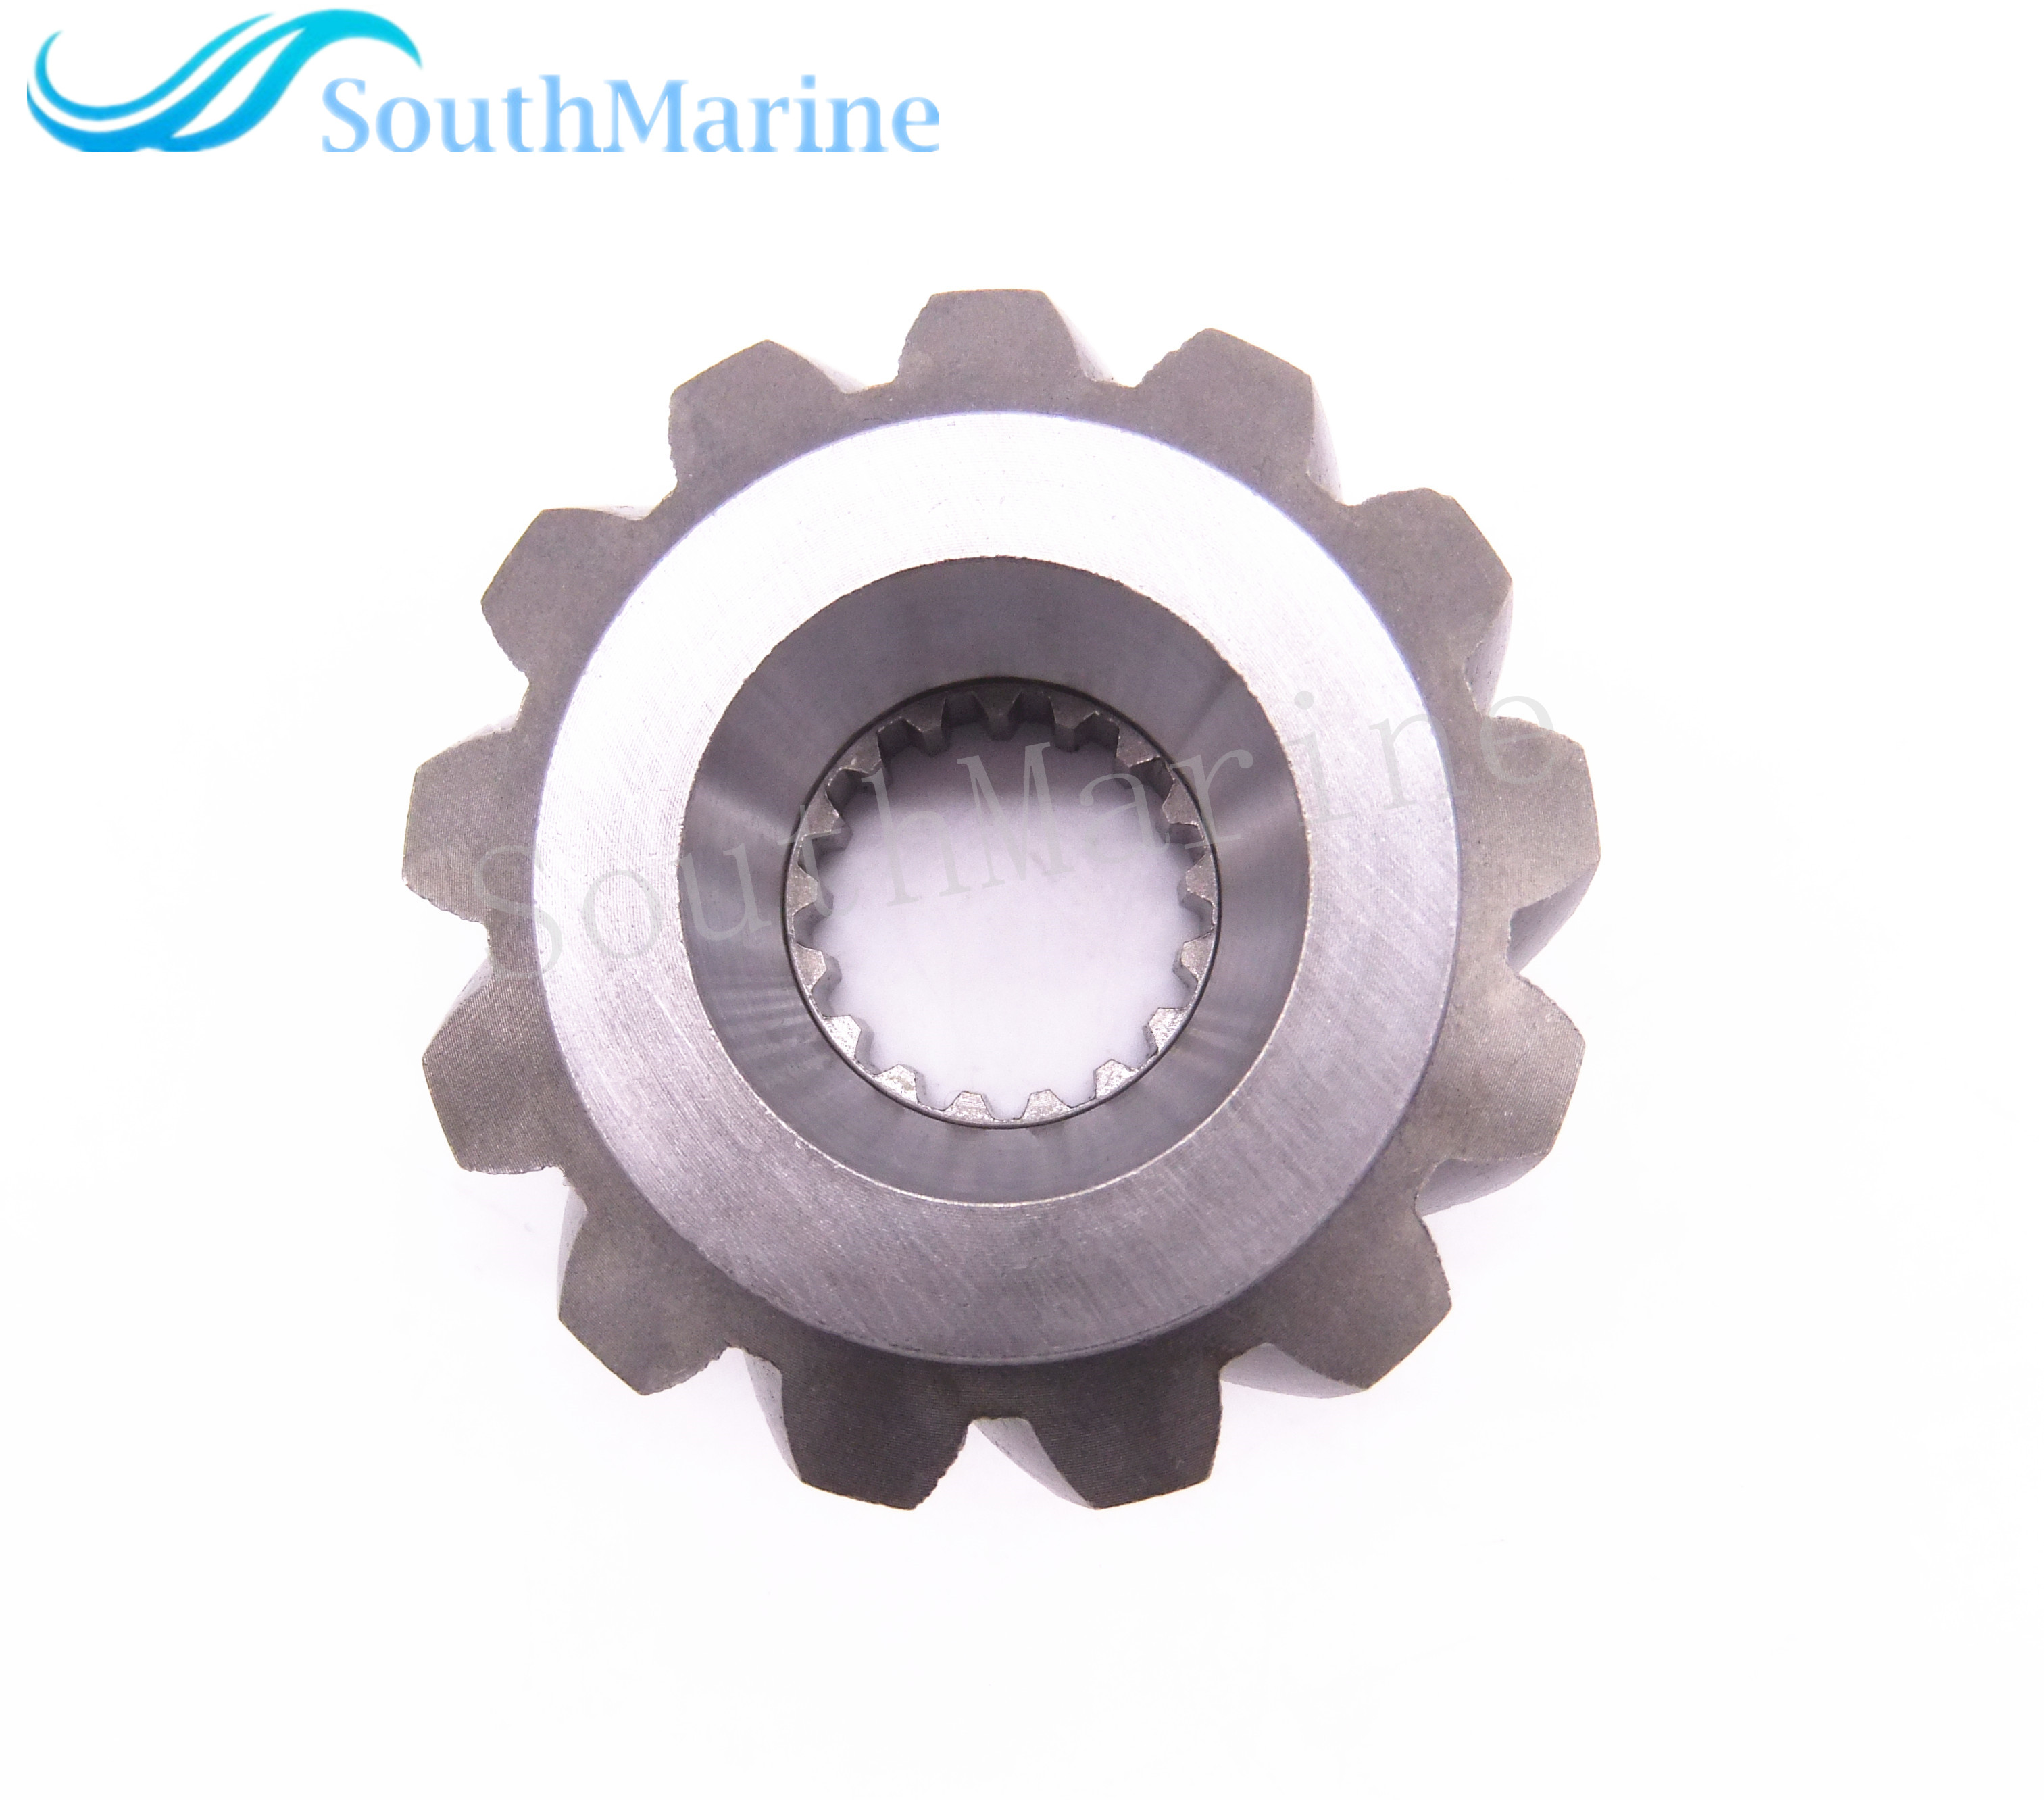 Boat Motor T85-04000605 Pinion Gear For Parsun Hdx Outboard Engine 2-stroke T75 T85 T90 Free Shipping Available In Various Designs And Specifications For Your Selection Boat Parts & Accessories